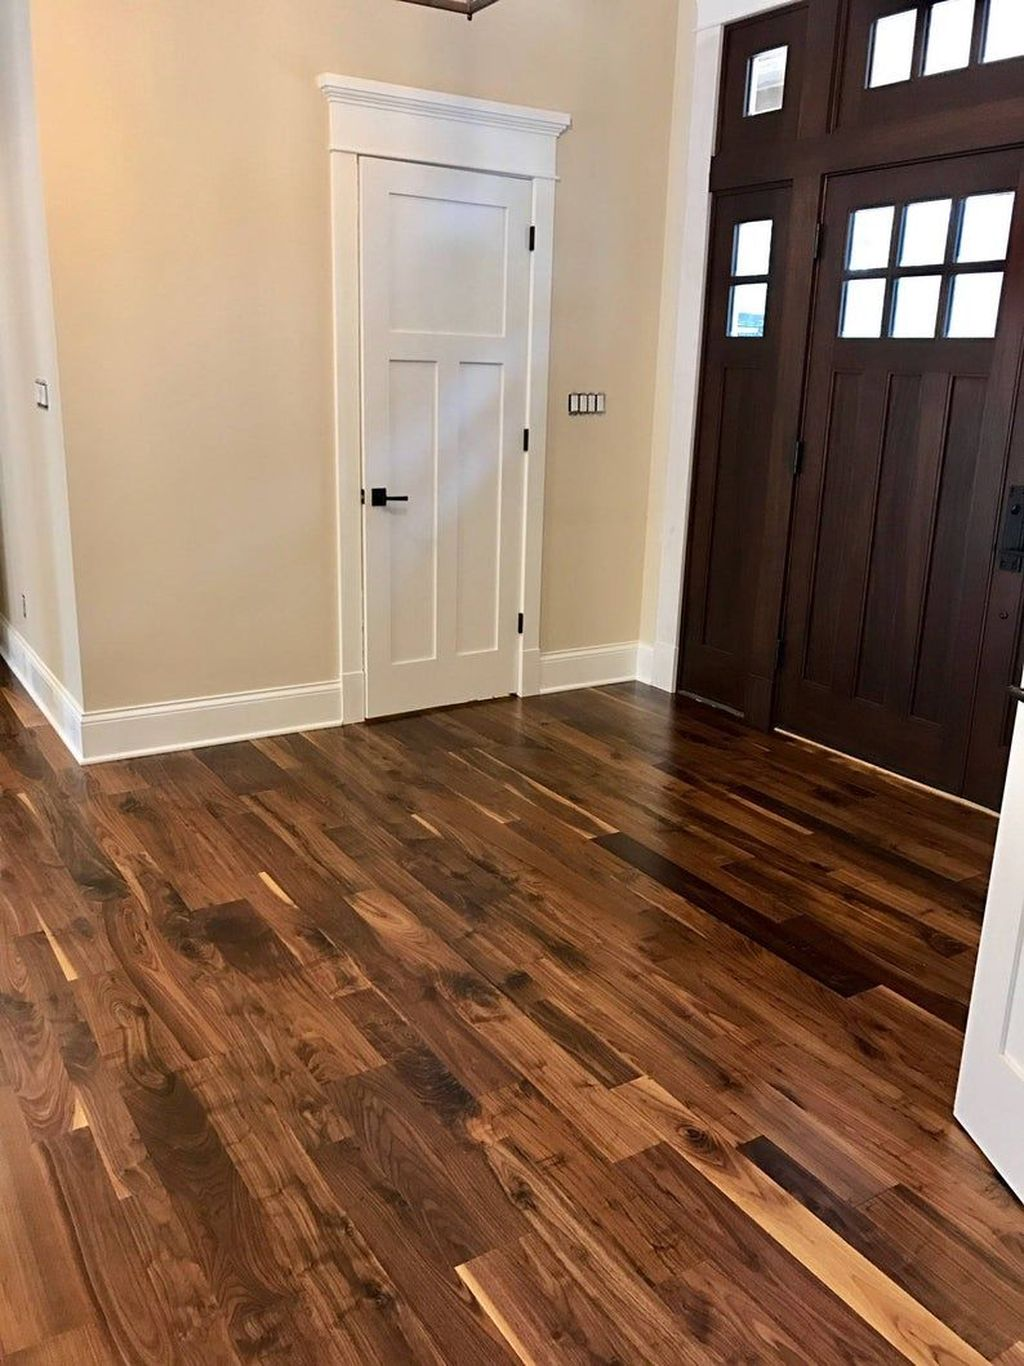 Awesome Wooden Tiles Flooring Ideas 09